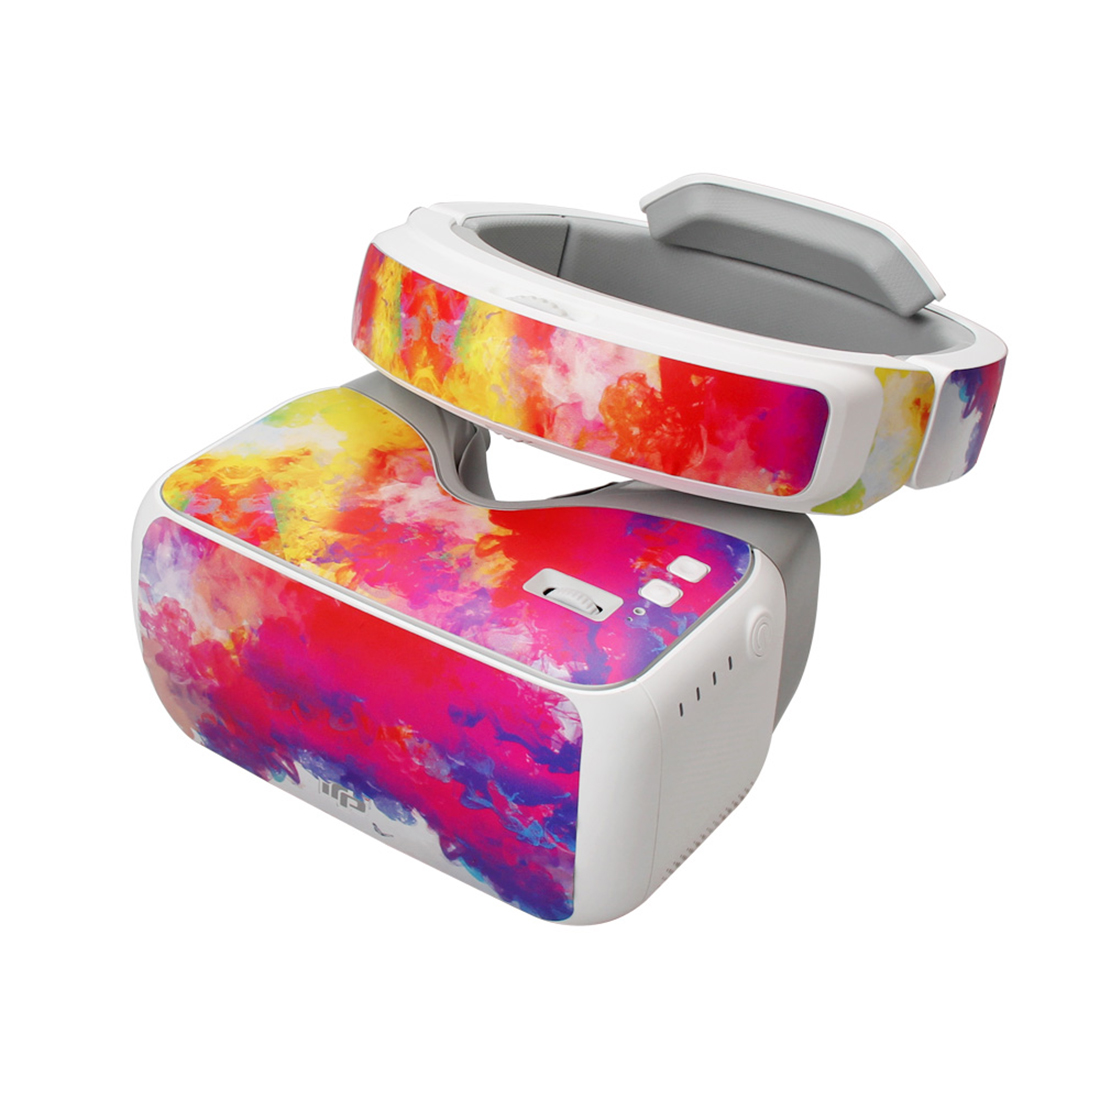 Cool Colorful Waterproof Stickers Decals Skin Cover Kit for DJI Goggles RC VR Glasses